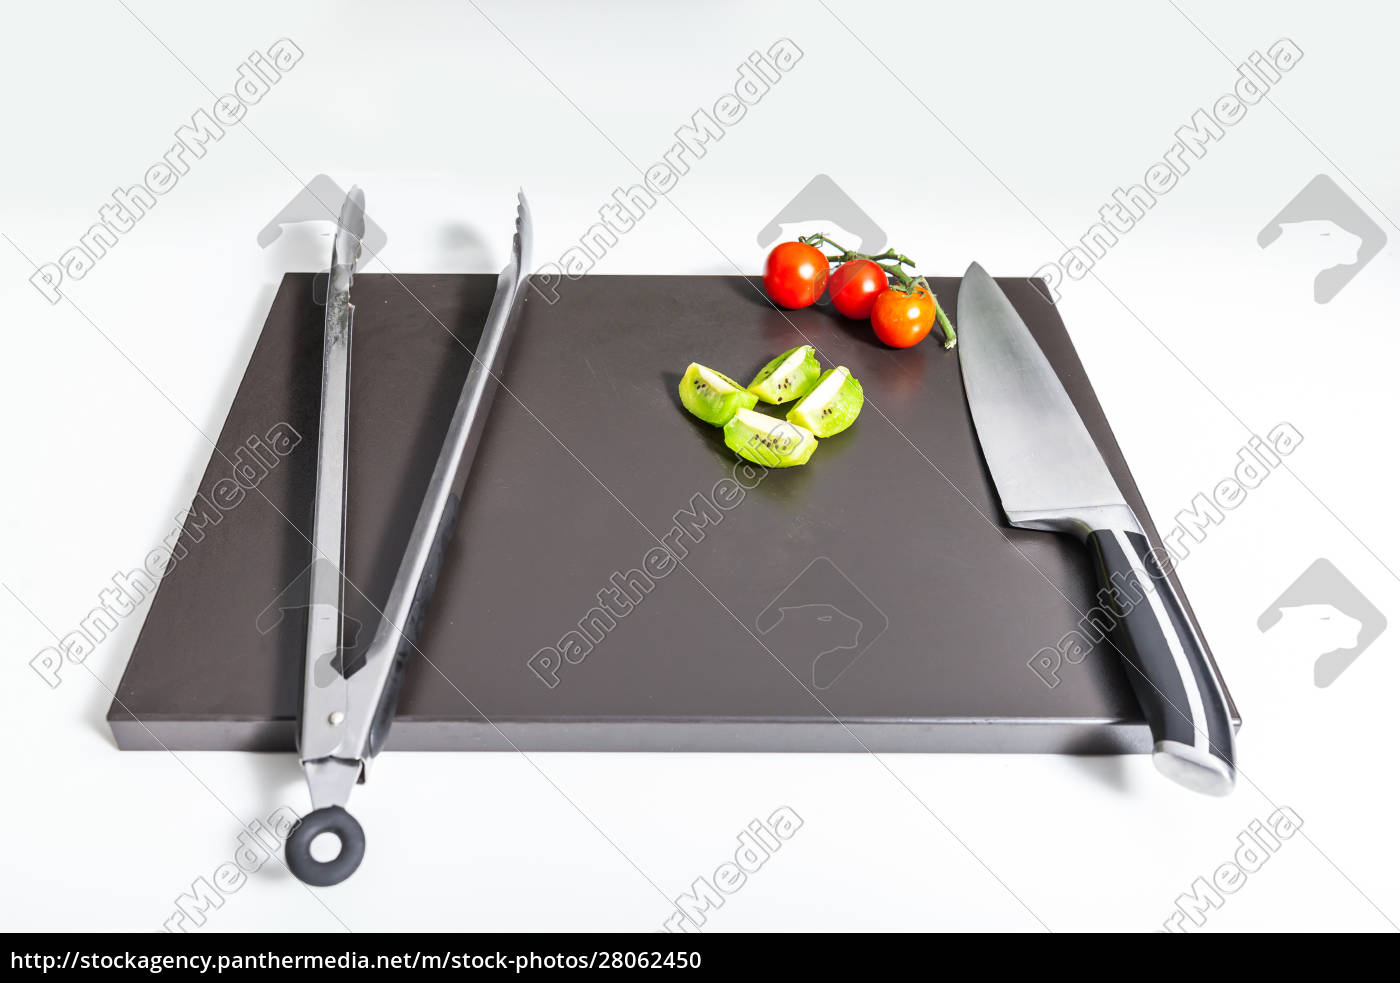 cooking, utensils, and, vegetables - 28062450